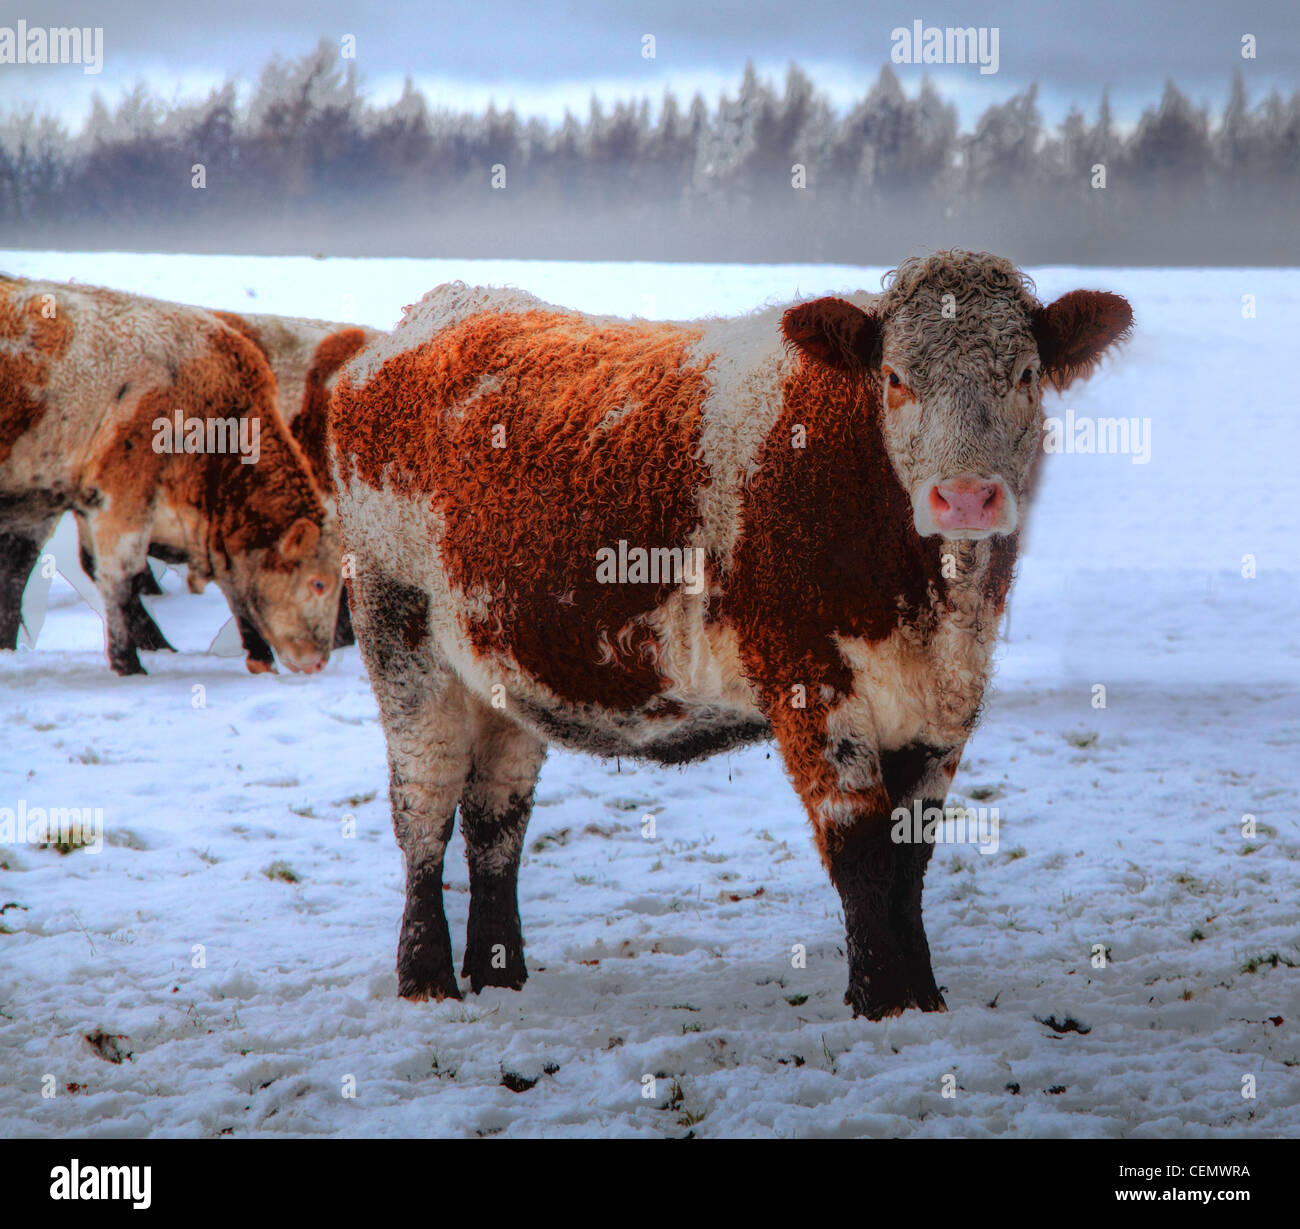 Brown,and,White,Highland,Cow,near,Dalkeith,Palace,Midlothian,in ice,snow,harsh winter,Scotland,UK,gotonysmith,ice,snow,icy,cold,winter,wintery,curious,fog,Scottish,country,countryside,gotonysmith,Buy Pictures of,Buy Images Of